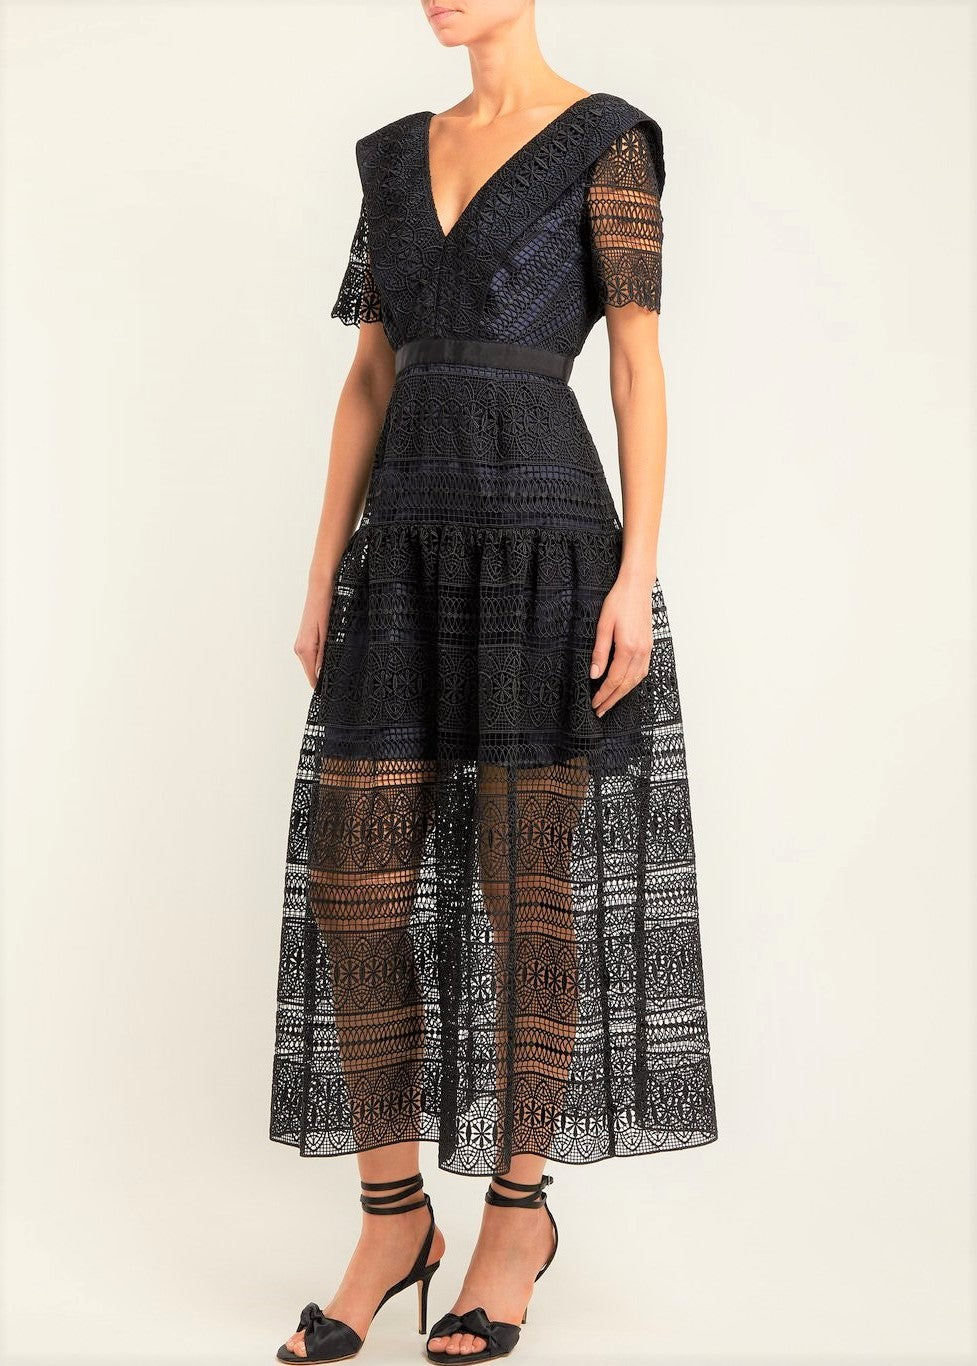 Just In - Women's New Arrivals – Elizabeth Charles